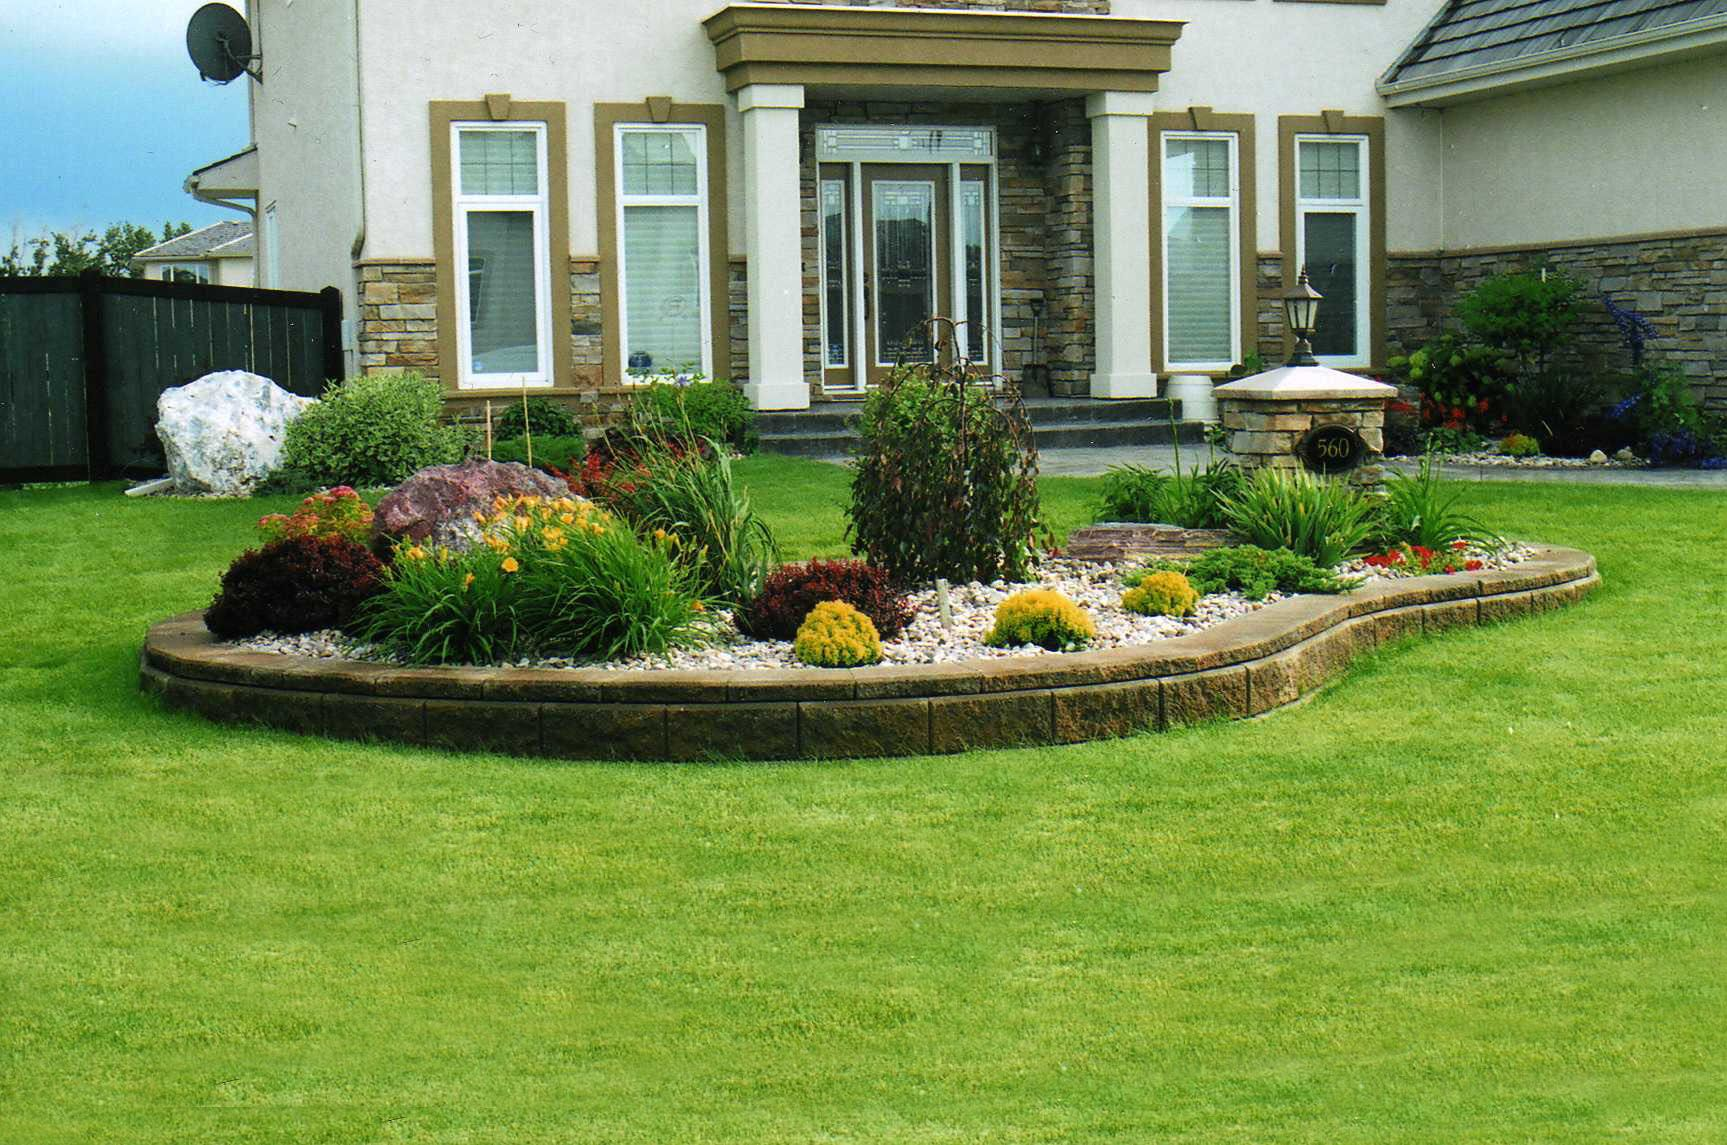 Flower bed landscaping ideas small flower bed garden for Small flower bed ideas